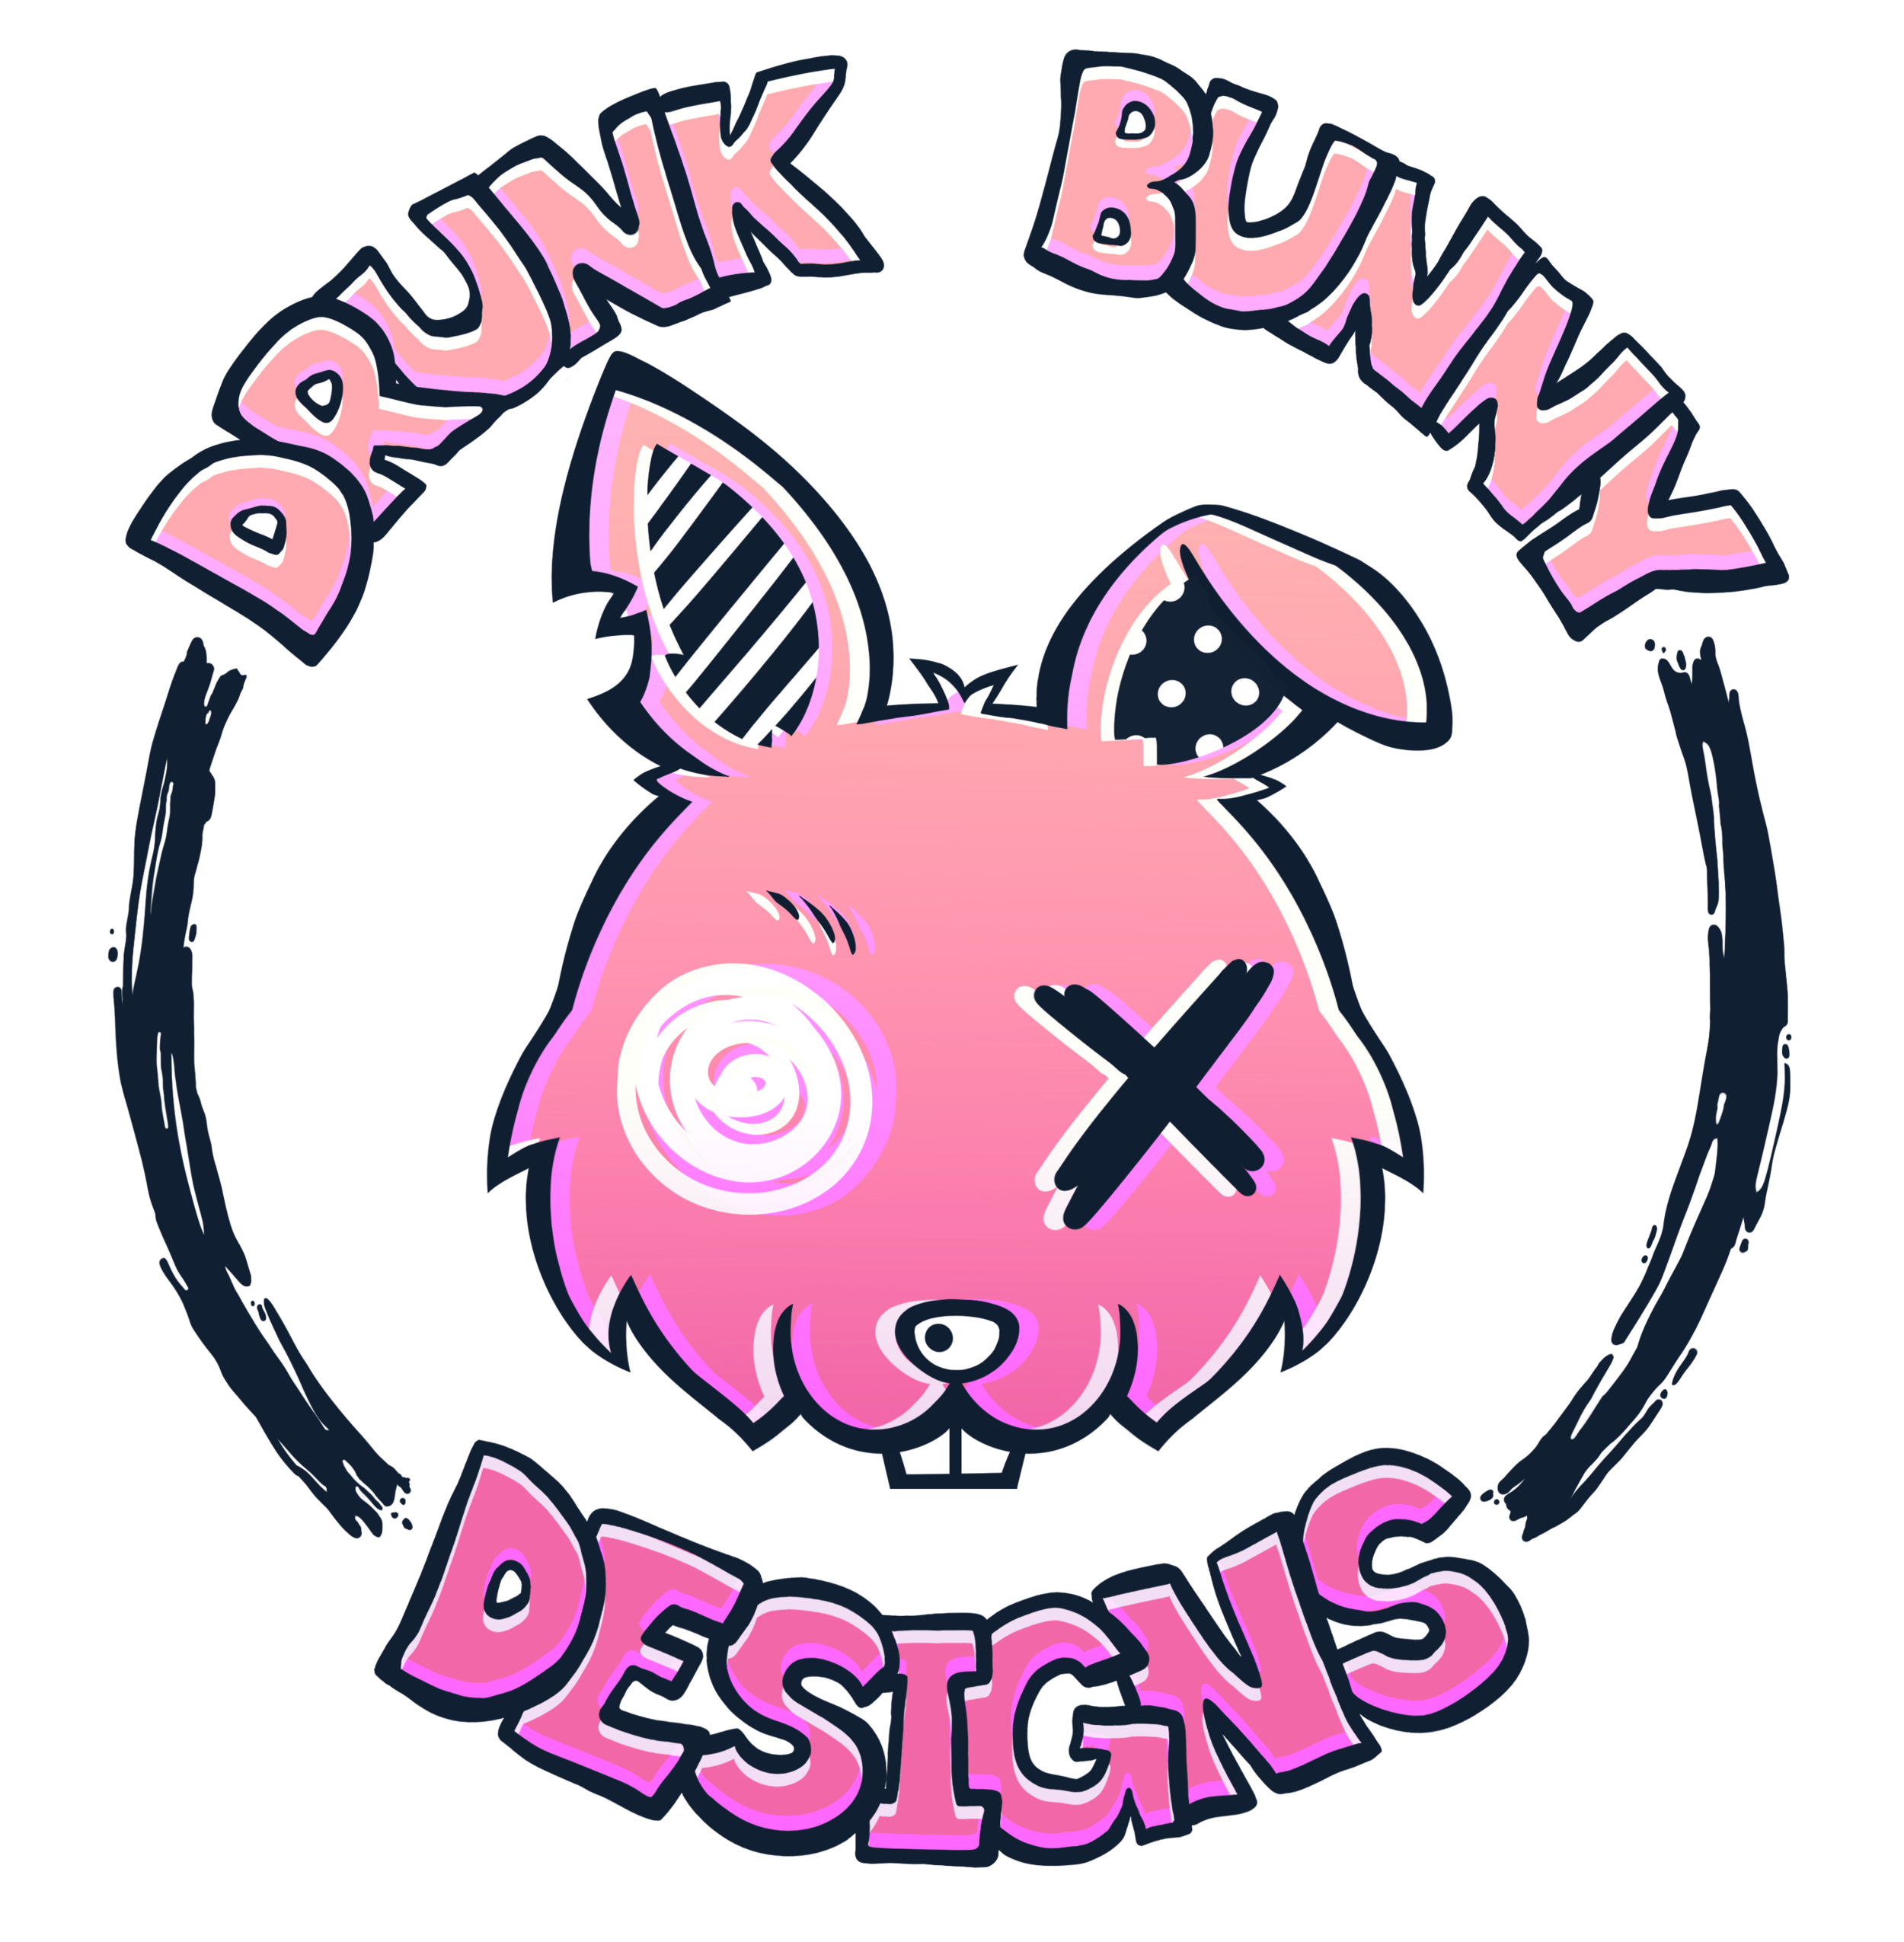 Drunk Bunny Designs - Drunk Bunny Designs is all about mixing old with the new in the most fun and exciting way. Each item is hand crafted with the utmost care to bring you that warm fuzzy feeling of nostalgia. With an array of upcycled jewelry and gilded toys there is something for everyone.IG: @drunkbunnydesigns